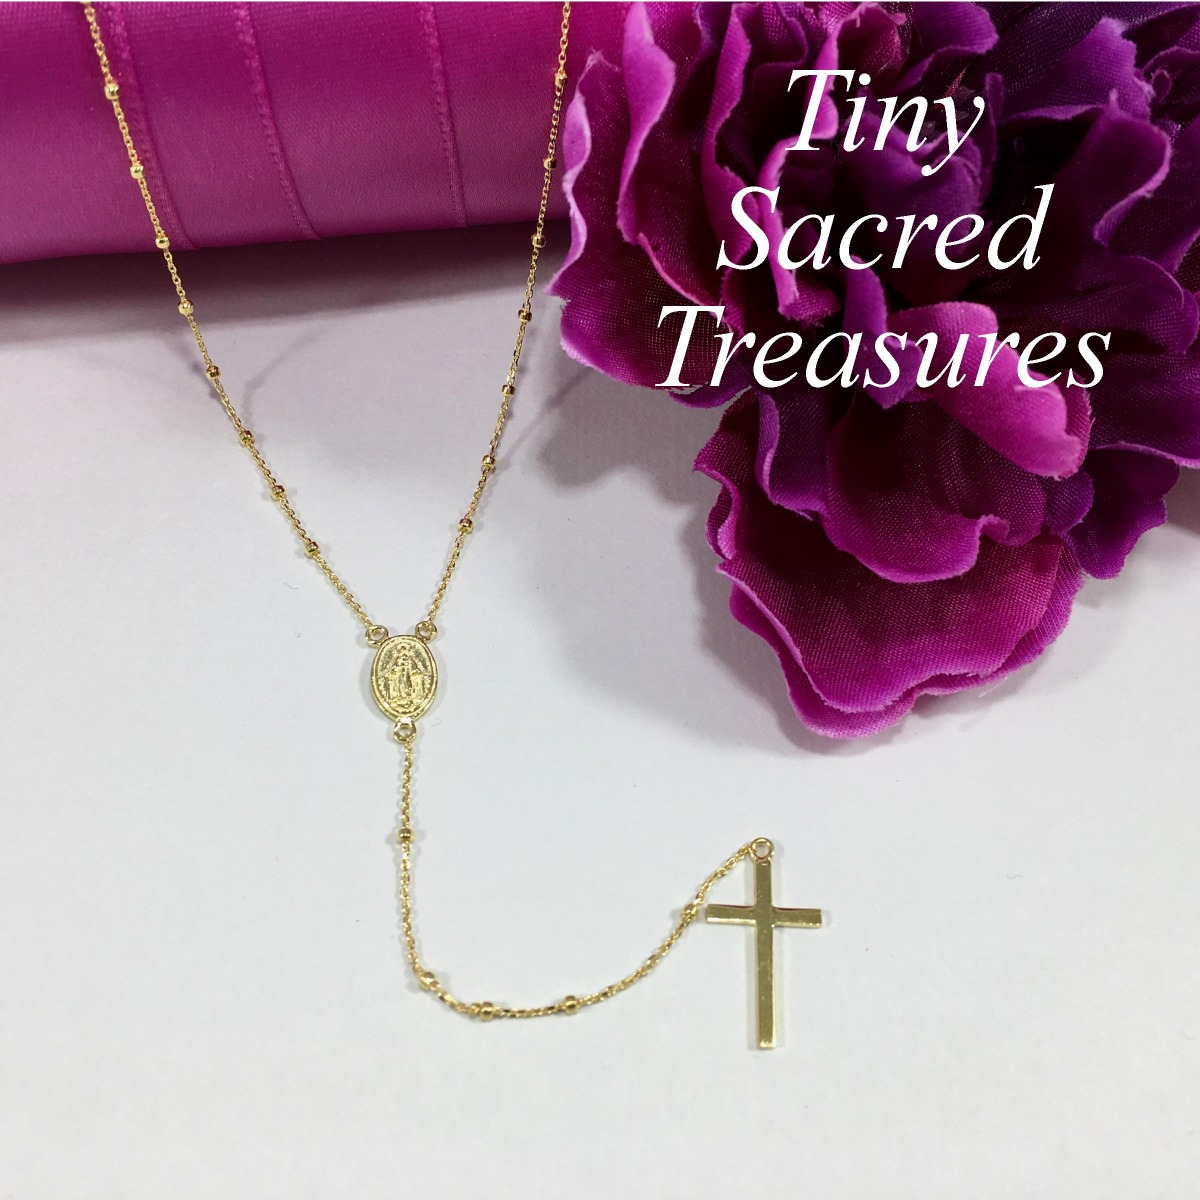 Tiny Sacred Treasures